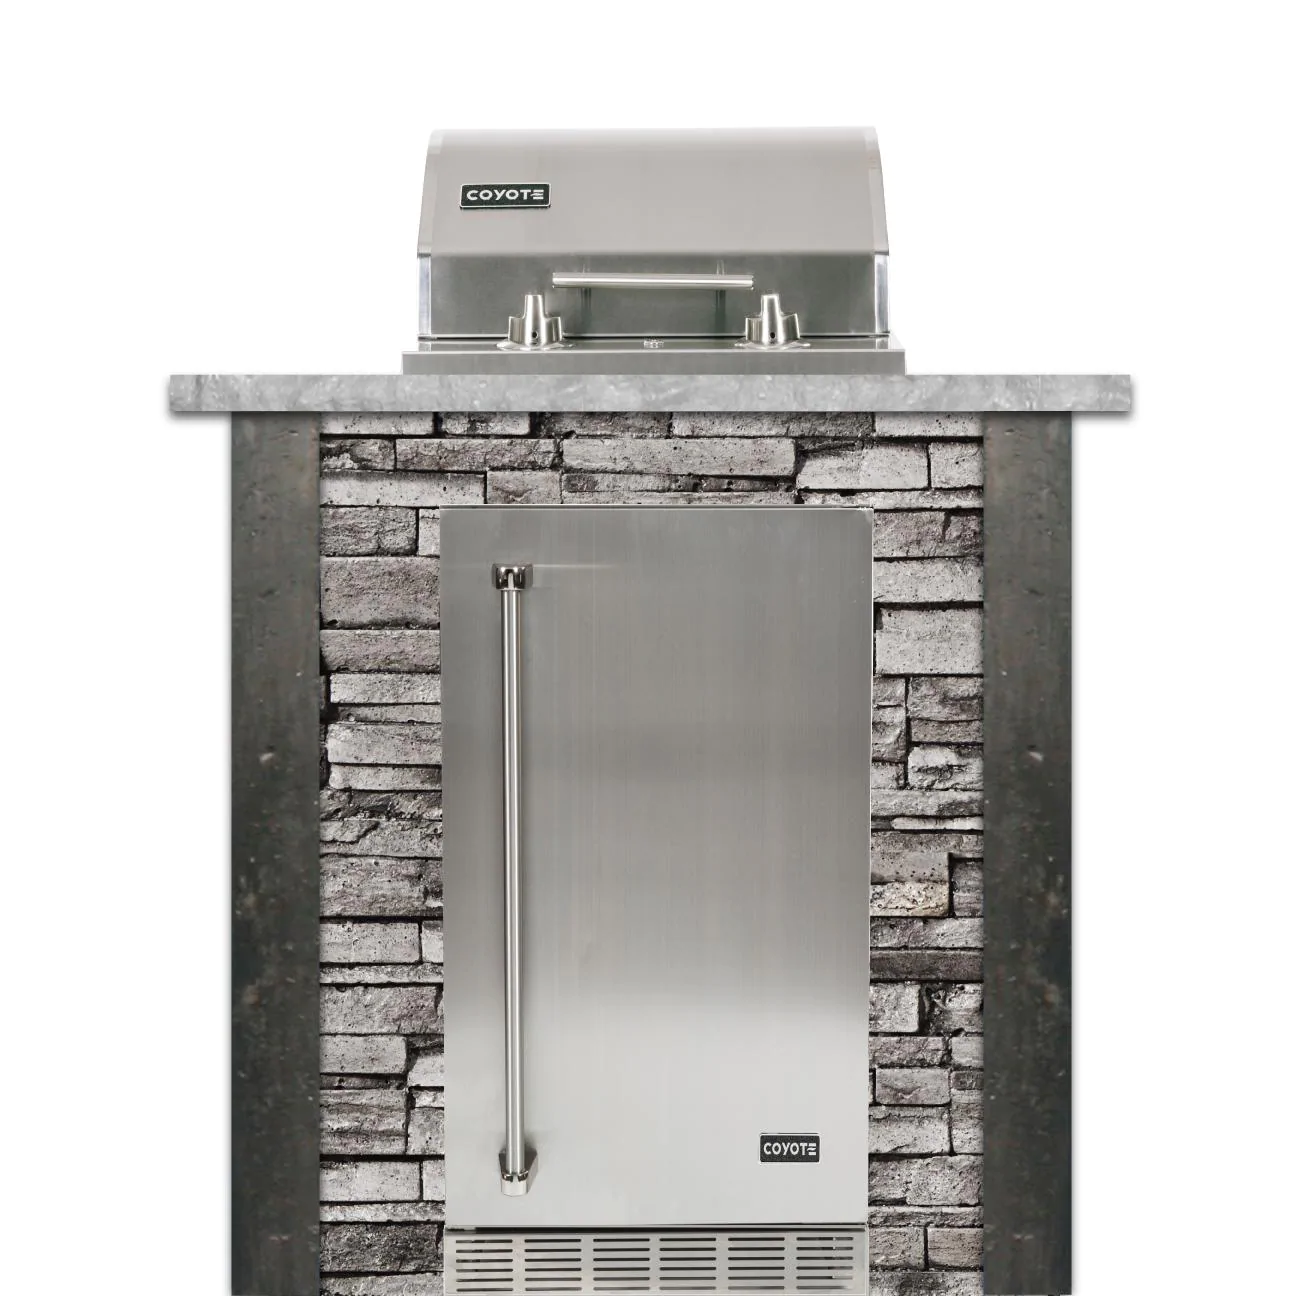 Coyote Ready-To-Assemble 3 Ft Outdoor Kitchen Island With 18-Inch Electric Grill And Right Hinge Refrigerator - Stacked Stone/Stone Gray - RTAC-E3F-SG-C1EL120SM-R